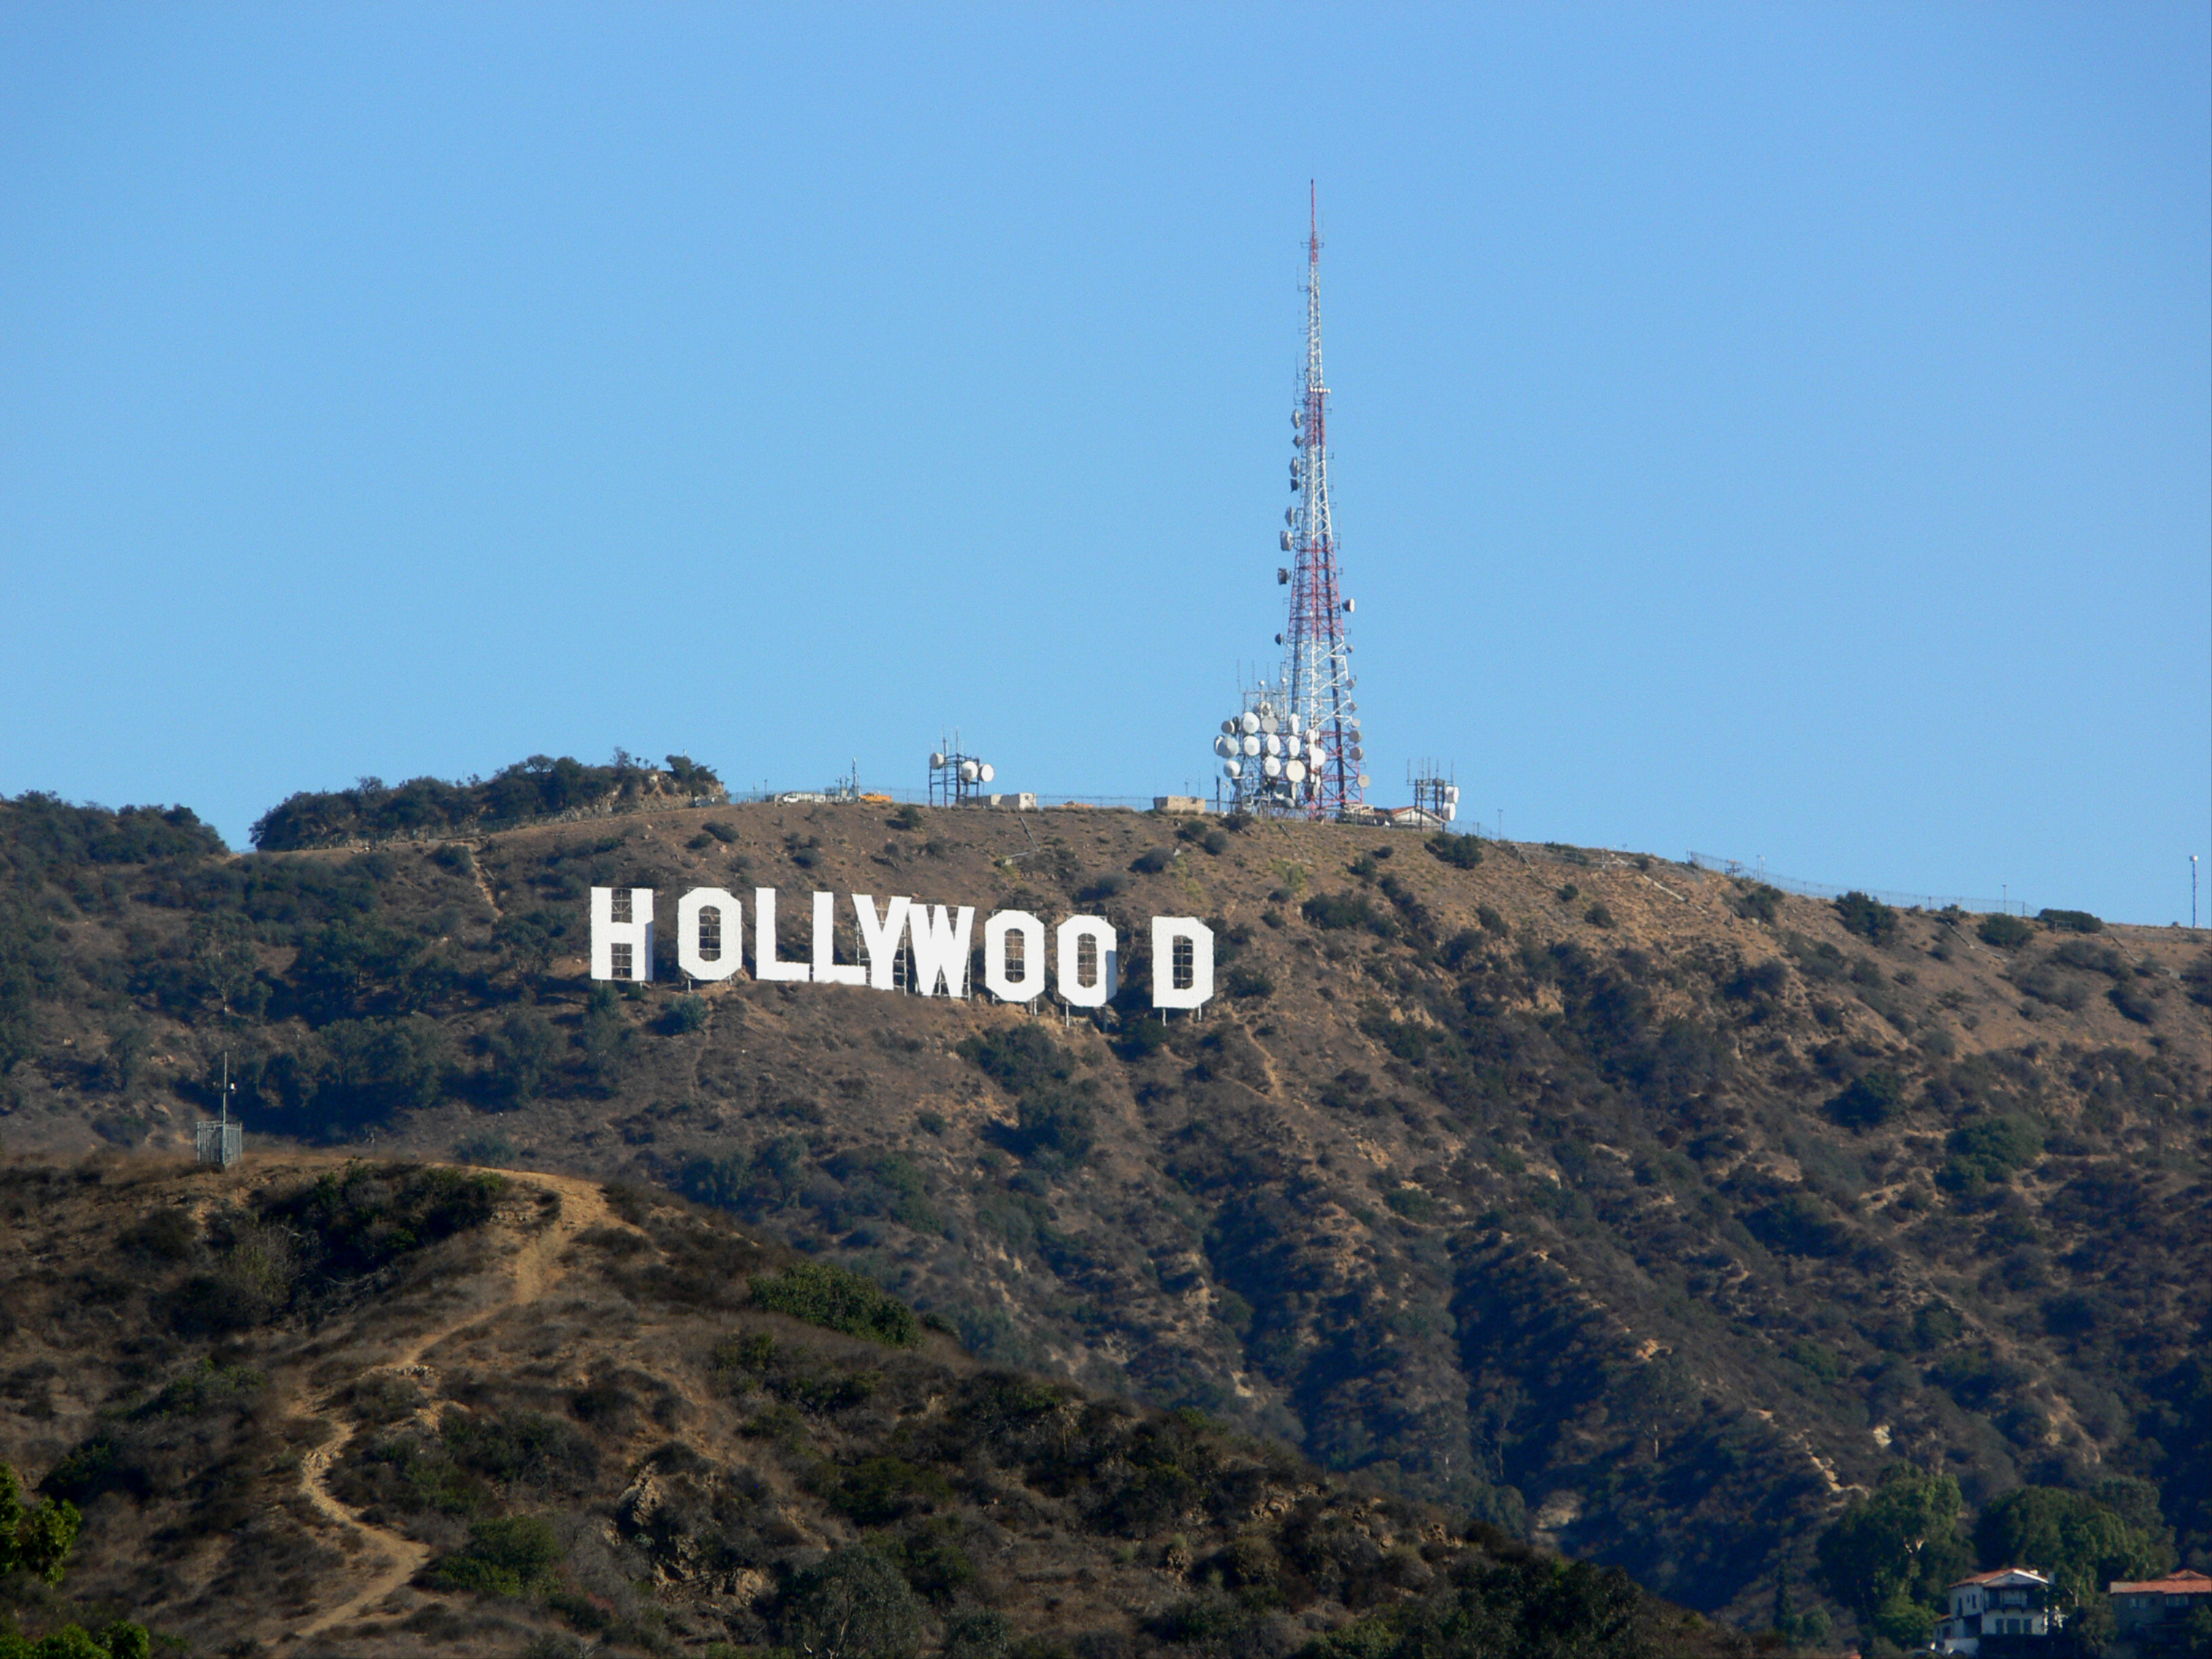 File:Hollywood sign 2008.jpg - Wikimedia Commons